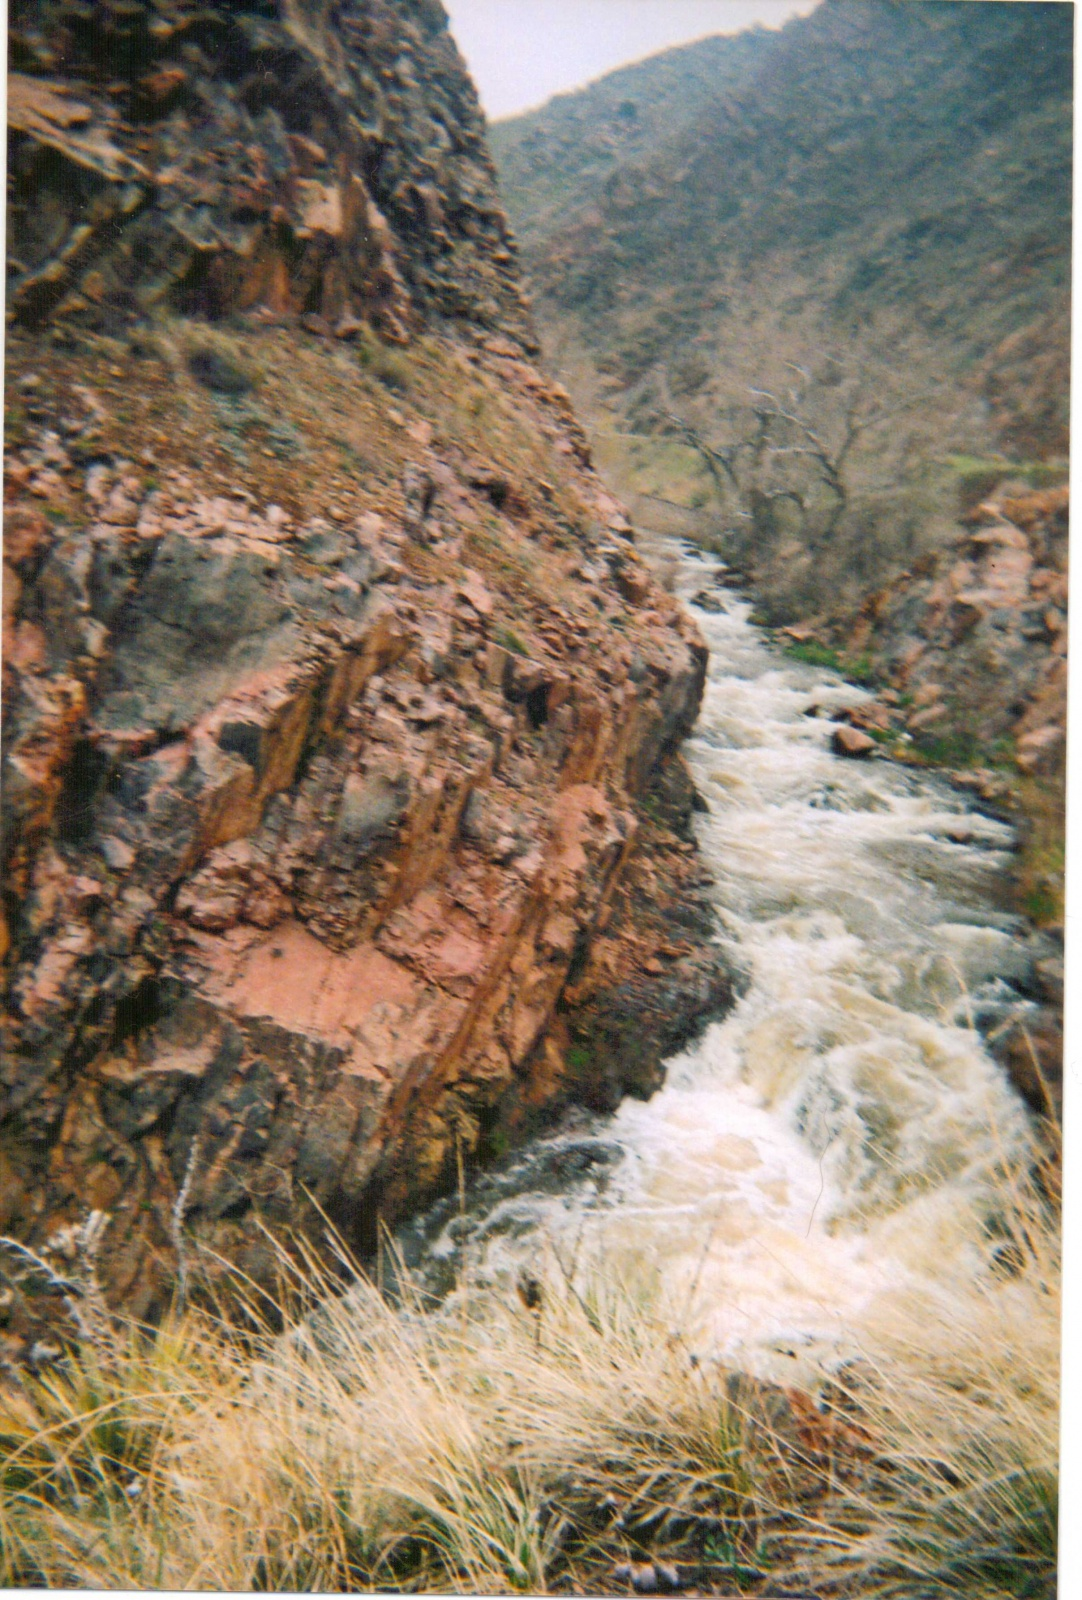 Click image for larger version  Name:No Fun lead in Bear creek.jpg Views:99 Size:713.5 KB ID:2336